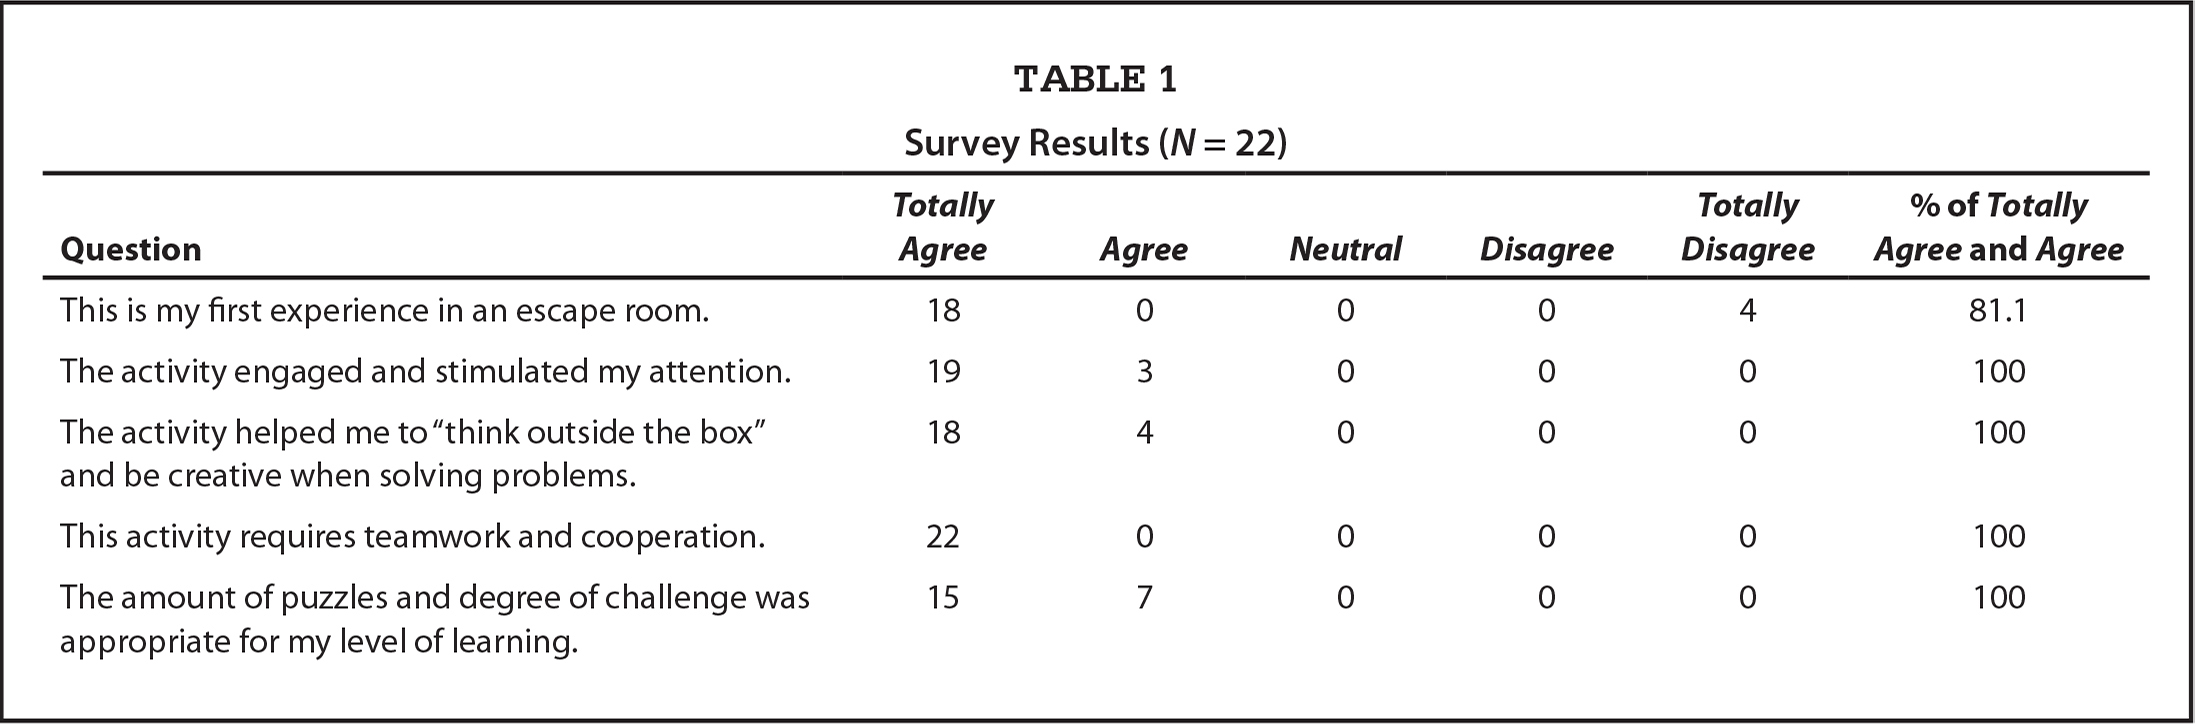 Survey Results (N = 22)